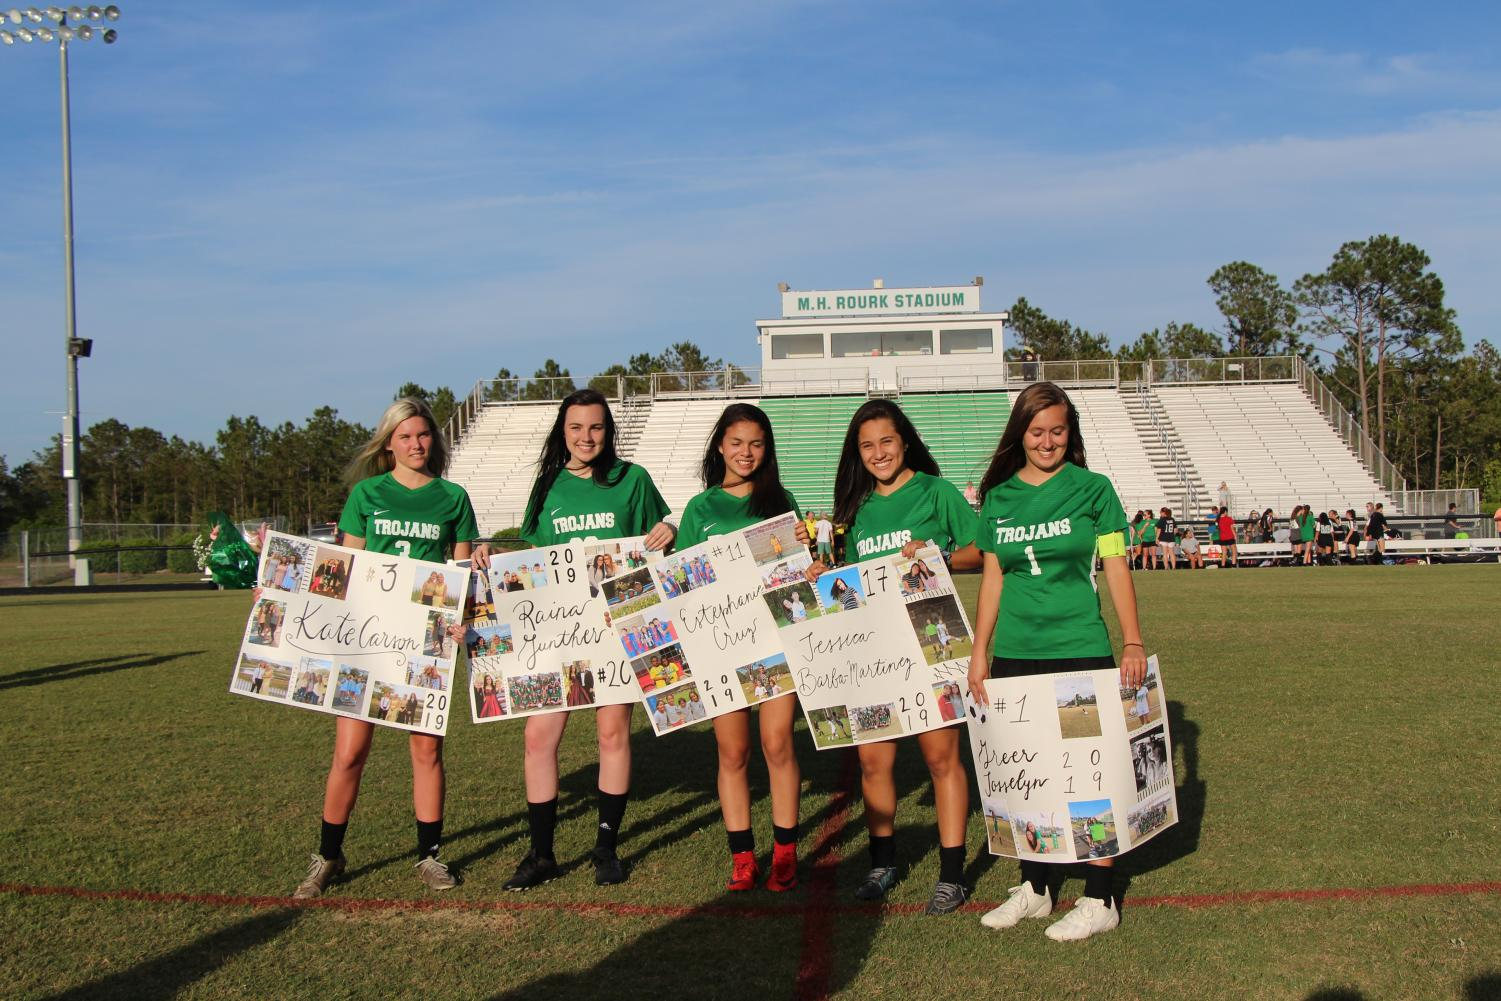 Our five seniors, from left to right: Kate Carson, Raina Gunther, Jessica Barba, Estephanie Cruz, and Greer Josselyn.